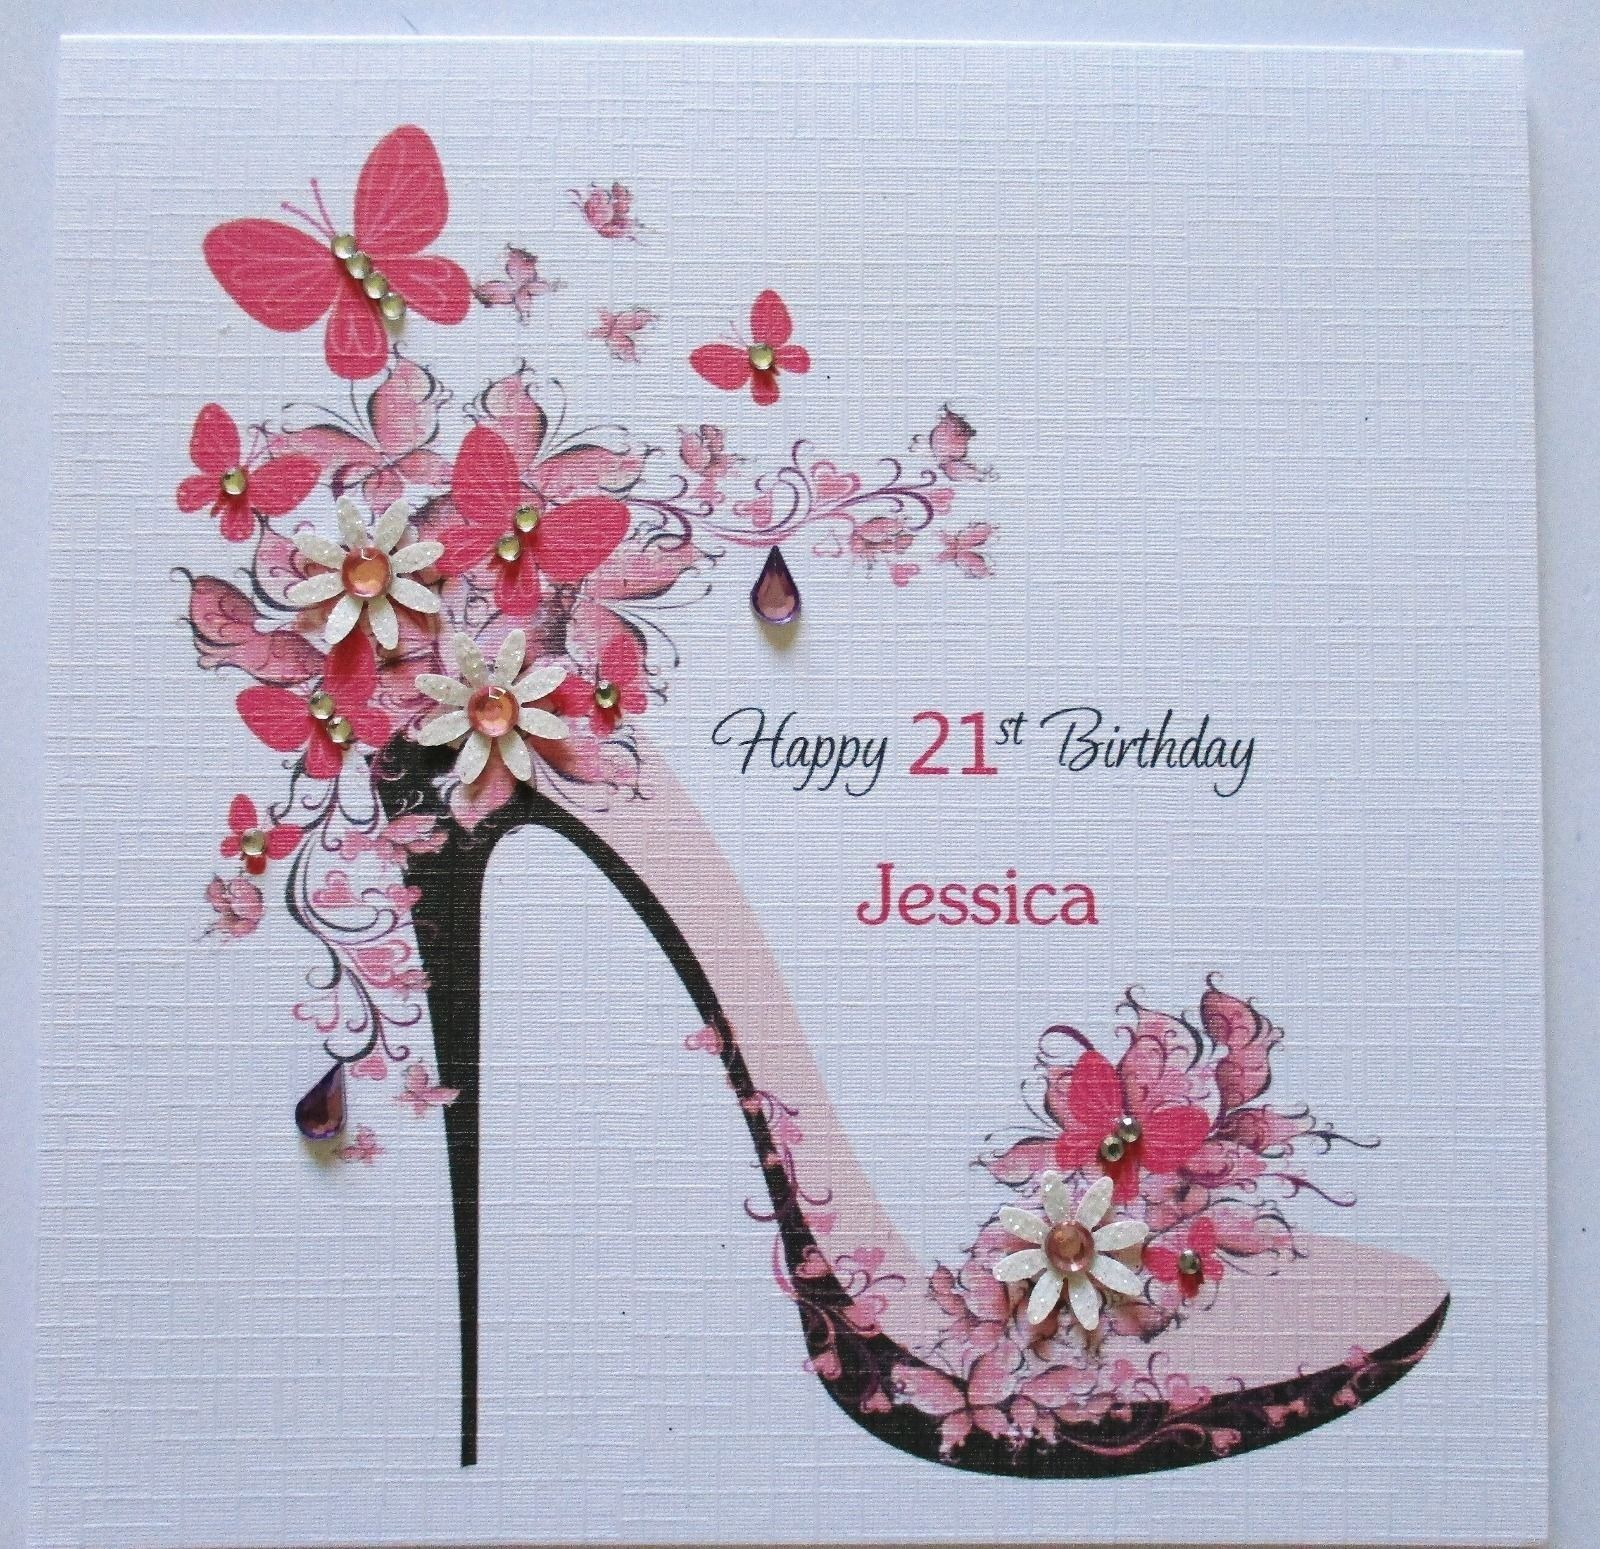 25 Elegant Bonsai Delivery Gift Pictures Bonsai Gallery Birthday Cards For Women 18th Birthday Cards 50th Birthday Cards